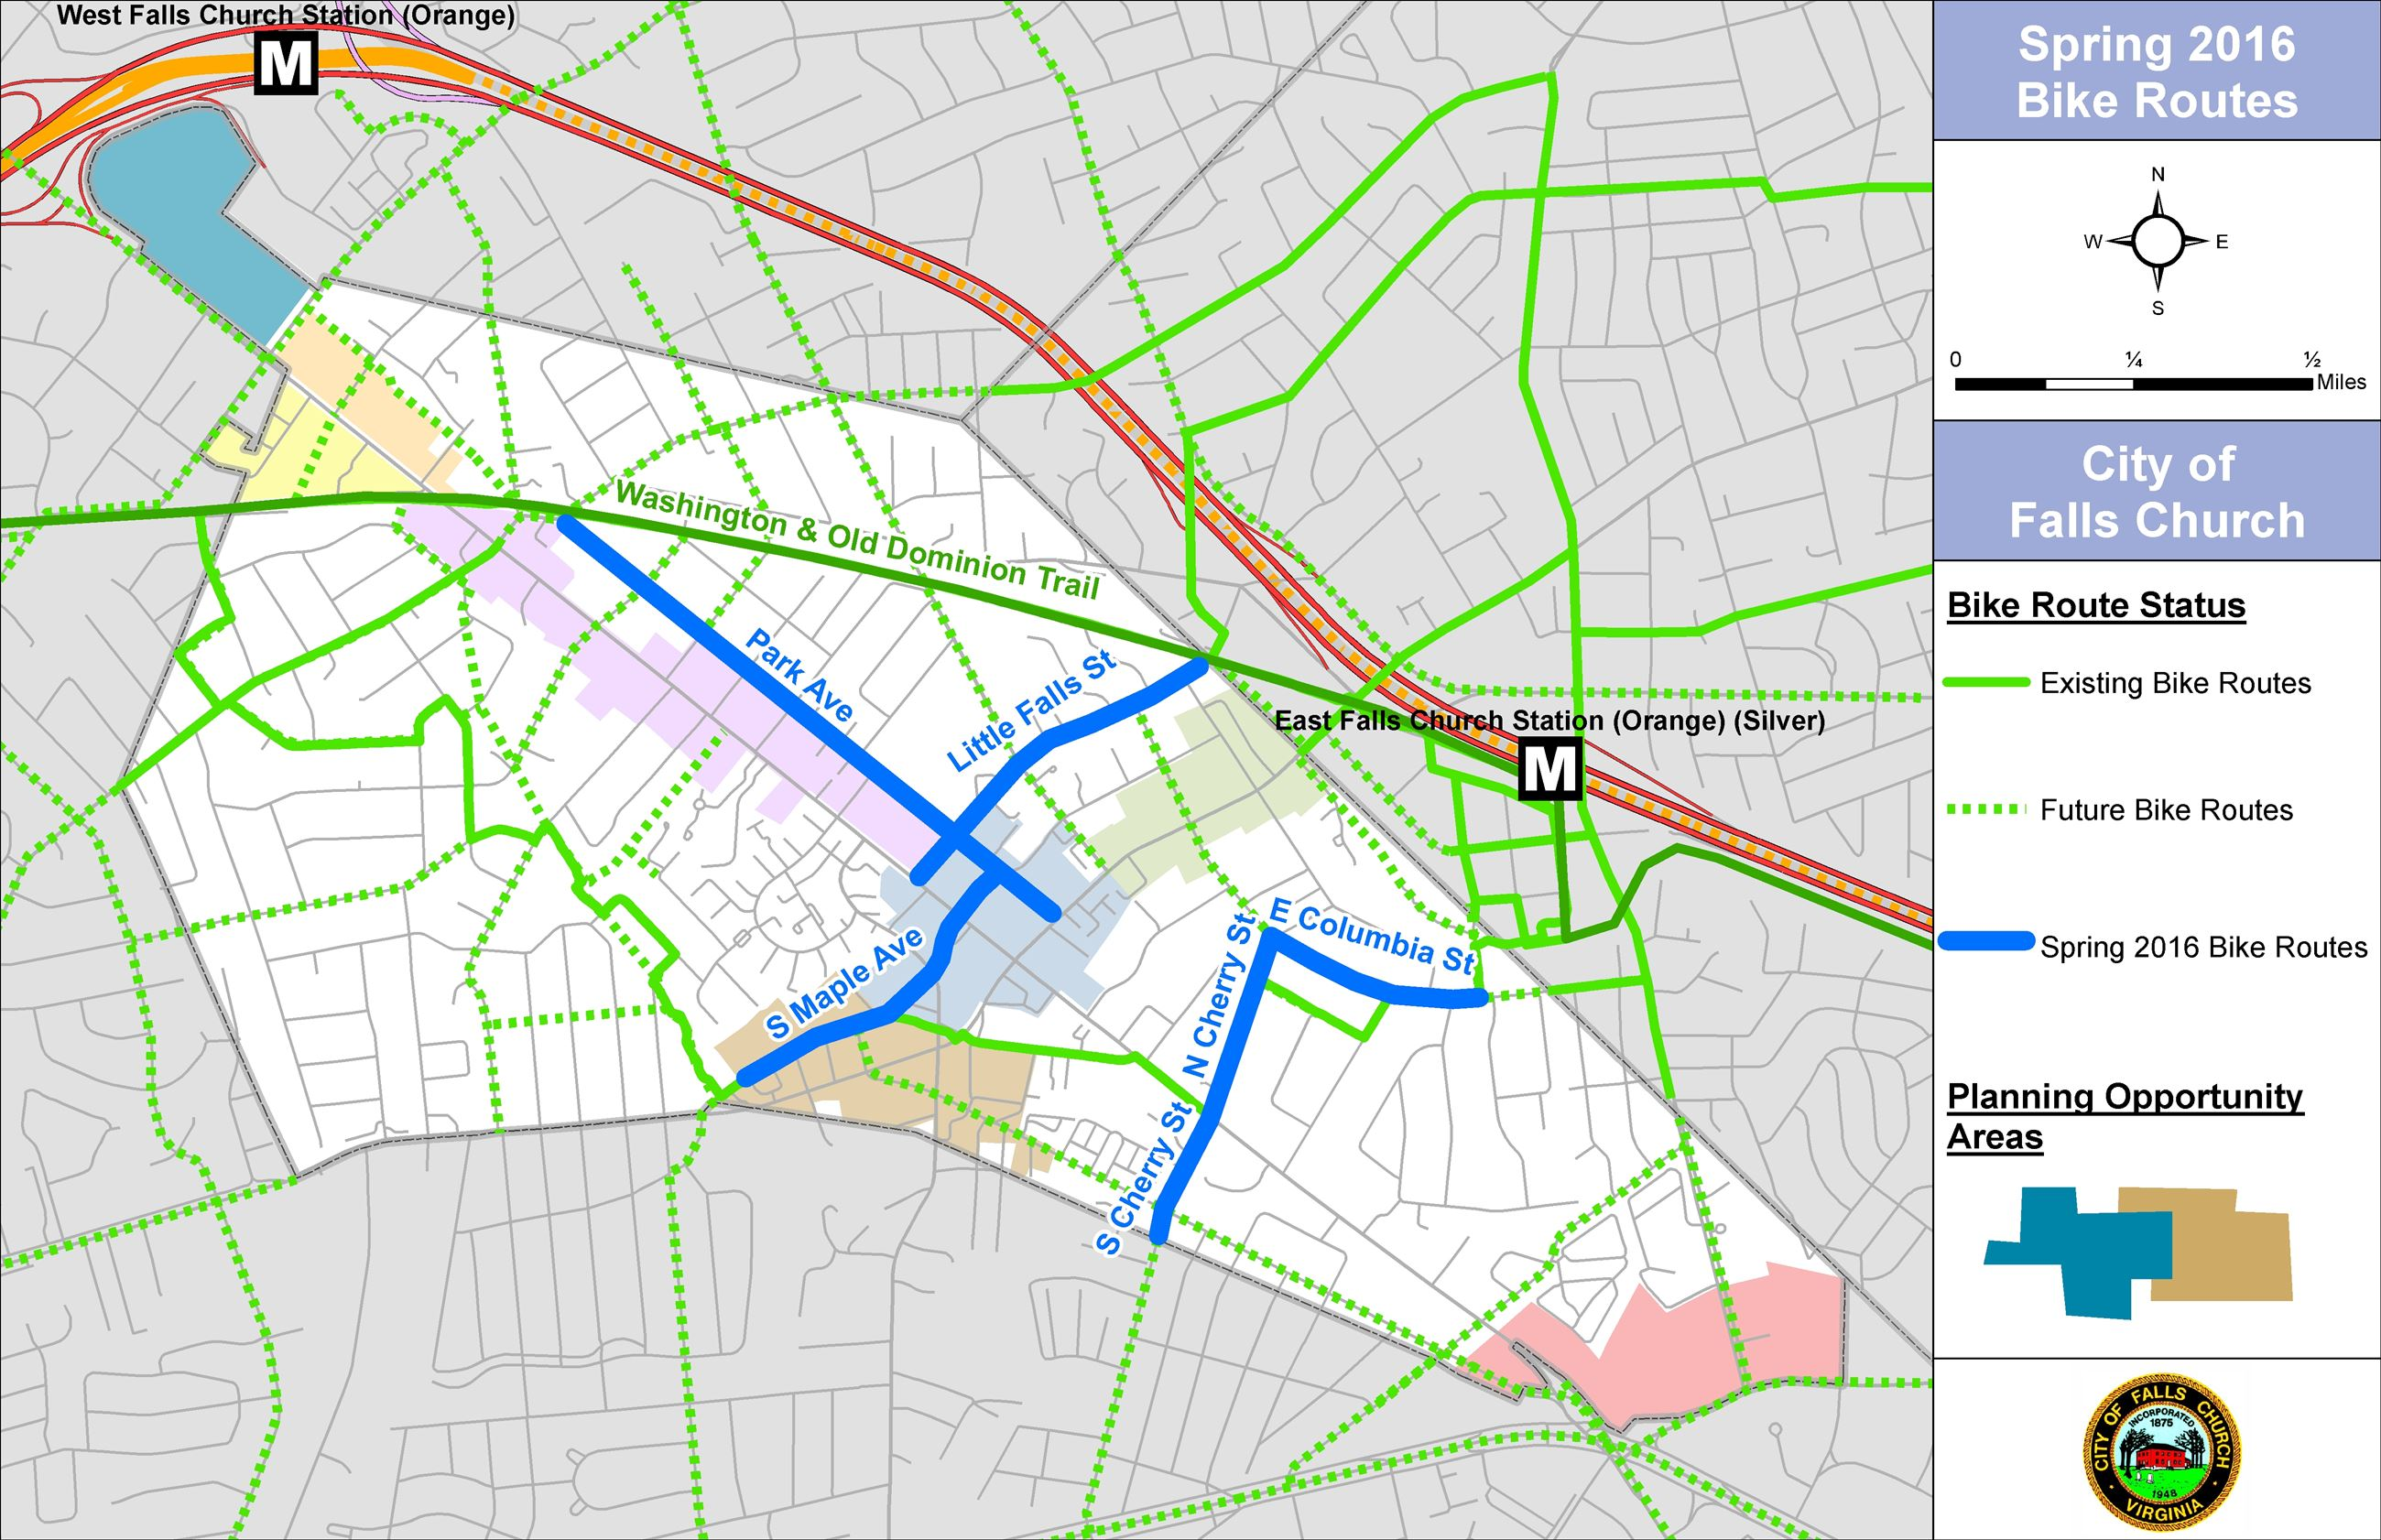 Spring 2016 Bike Routes Map